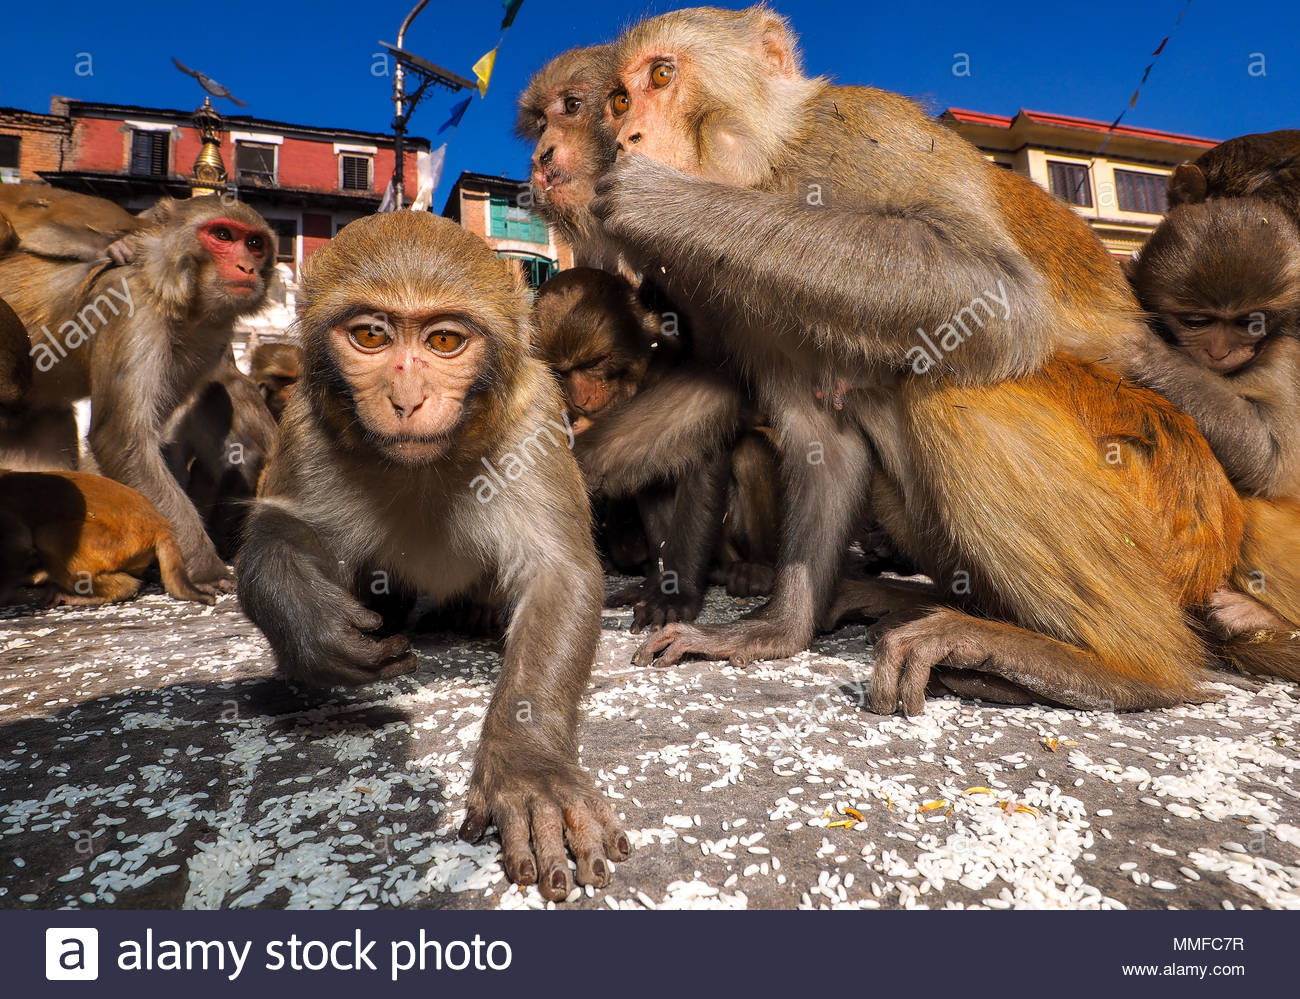 Rhesus macaques , Macaca mulatta, also called the Nazuri monkey eating rice in Monkey Temple. - Stock Image